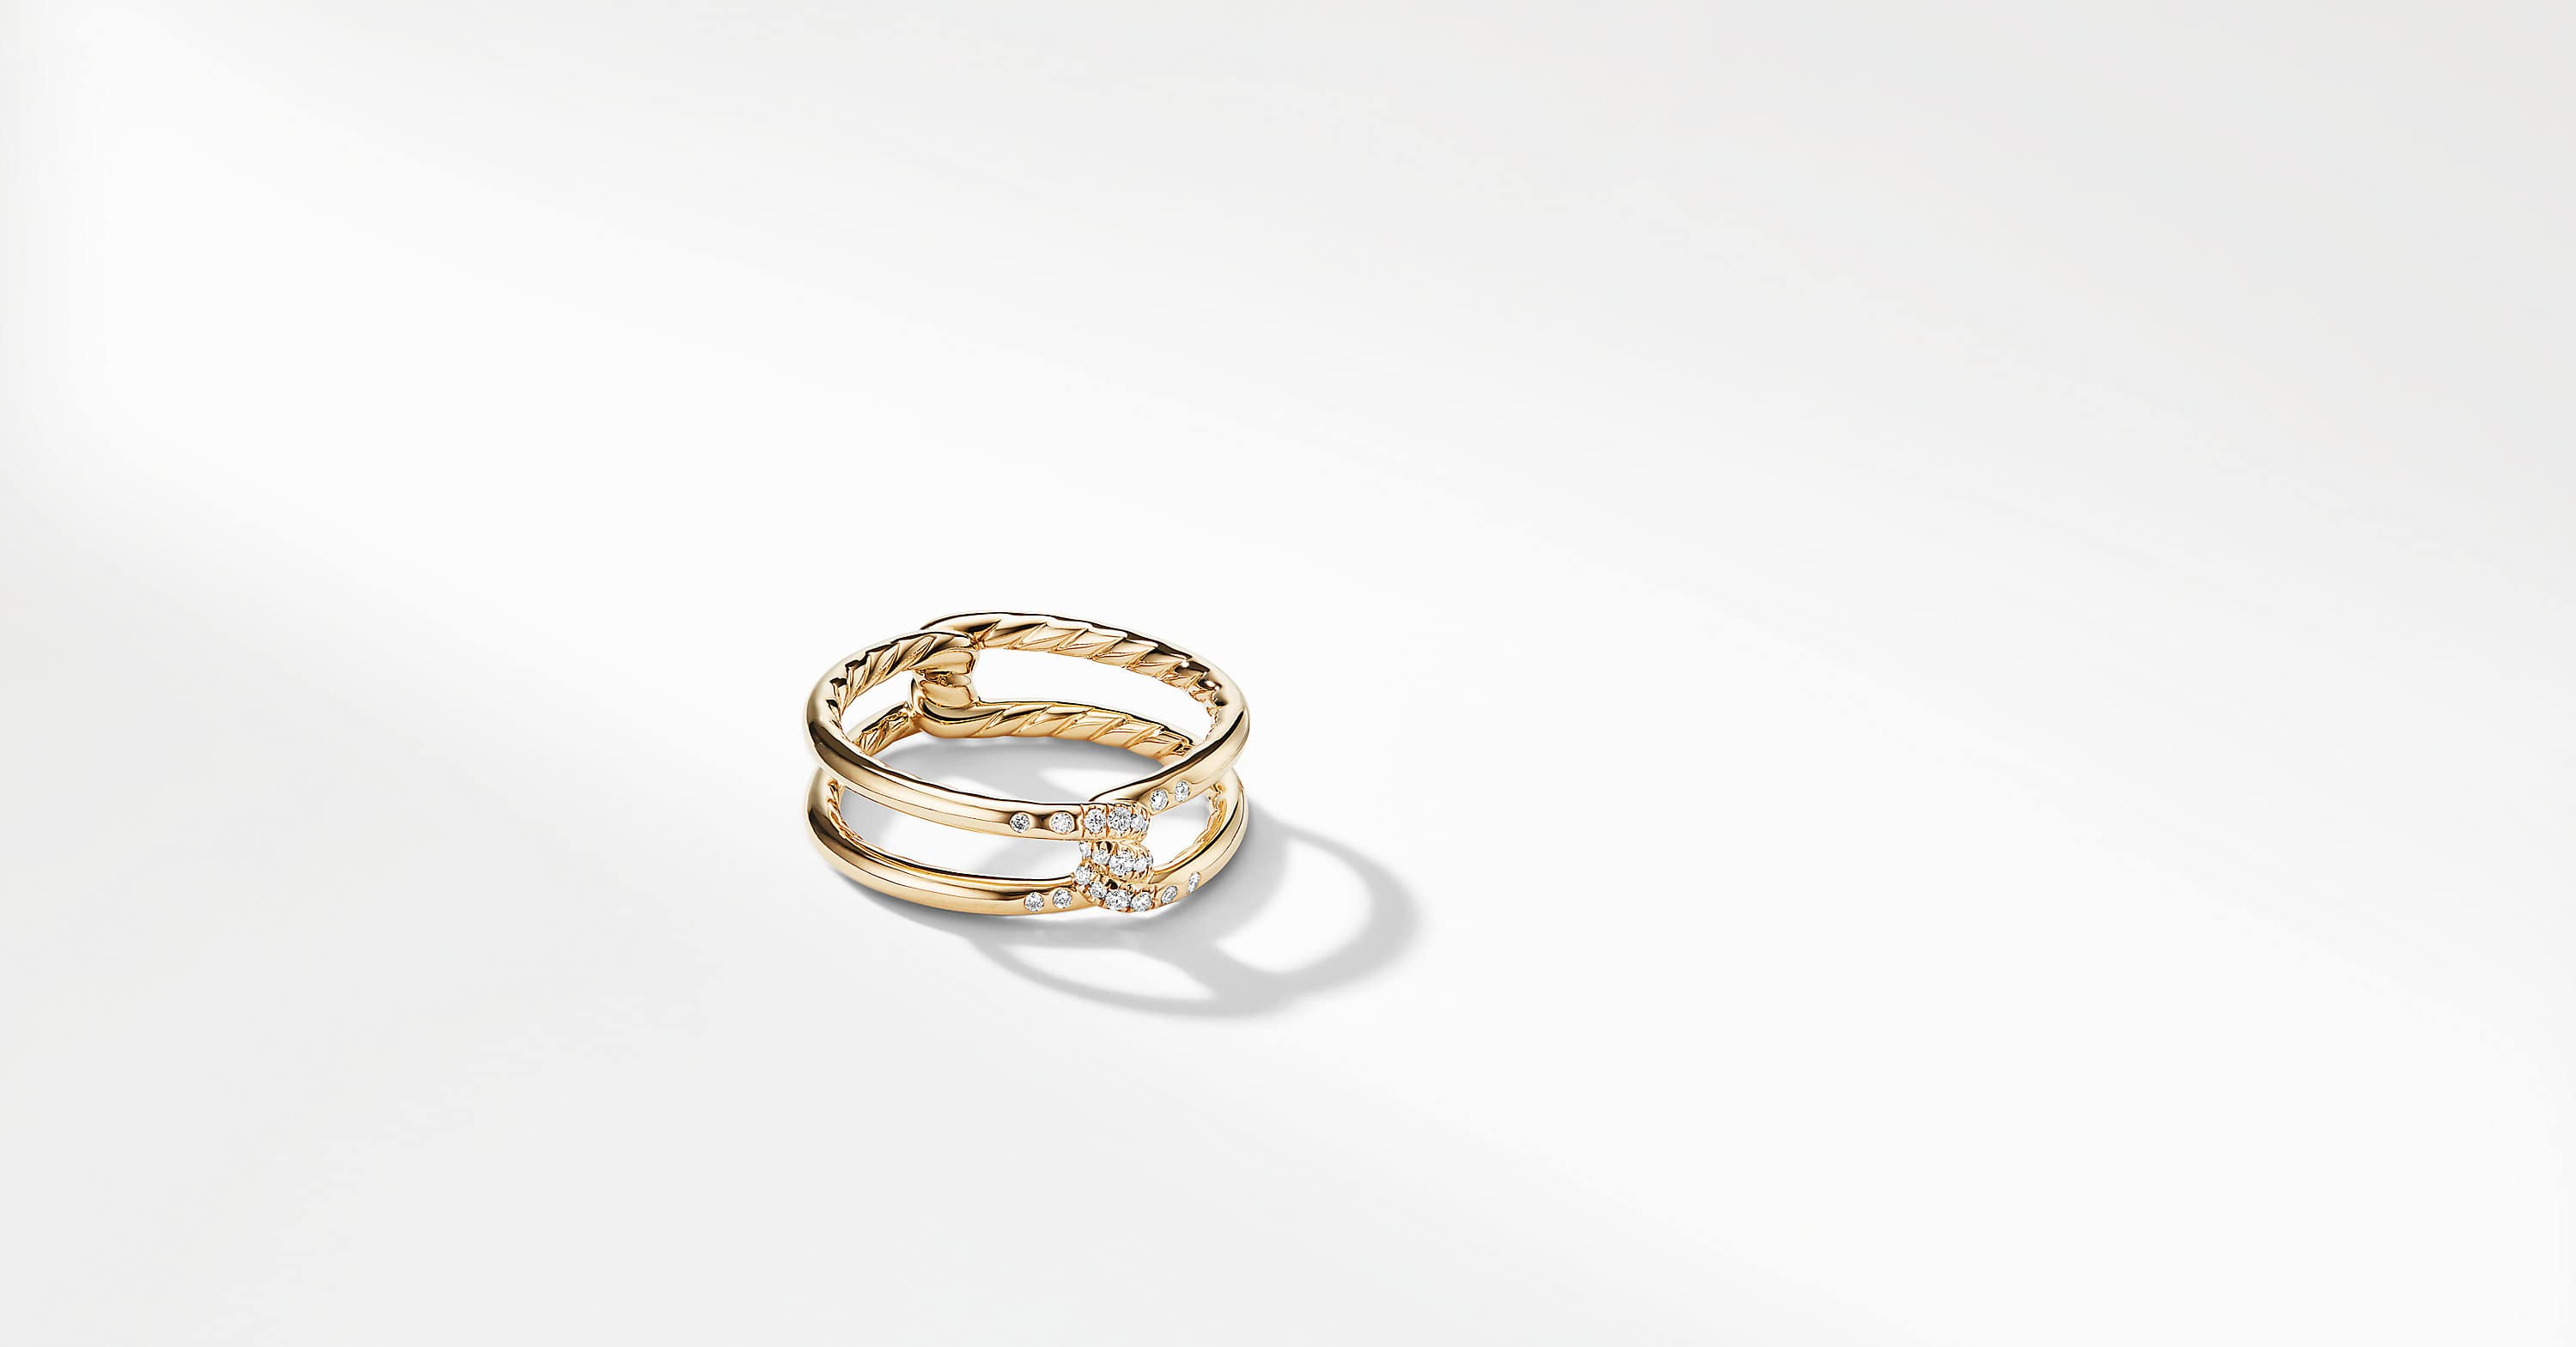 Continuance Band Ring with Diamonds in 18K Gold, 6.5mm